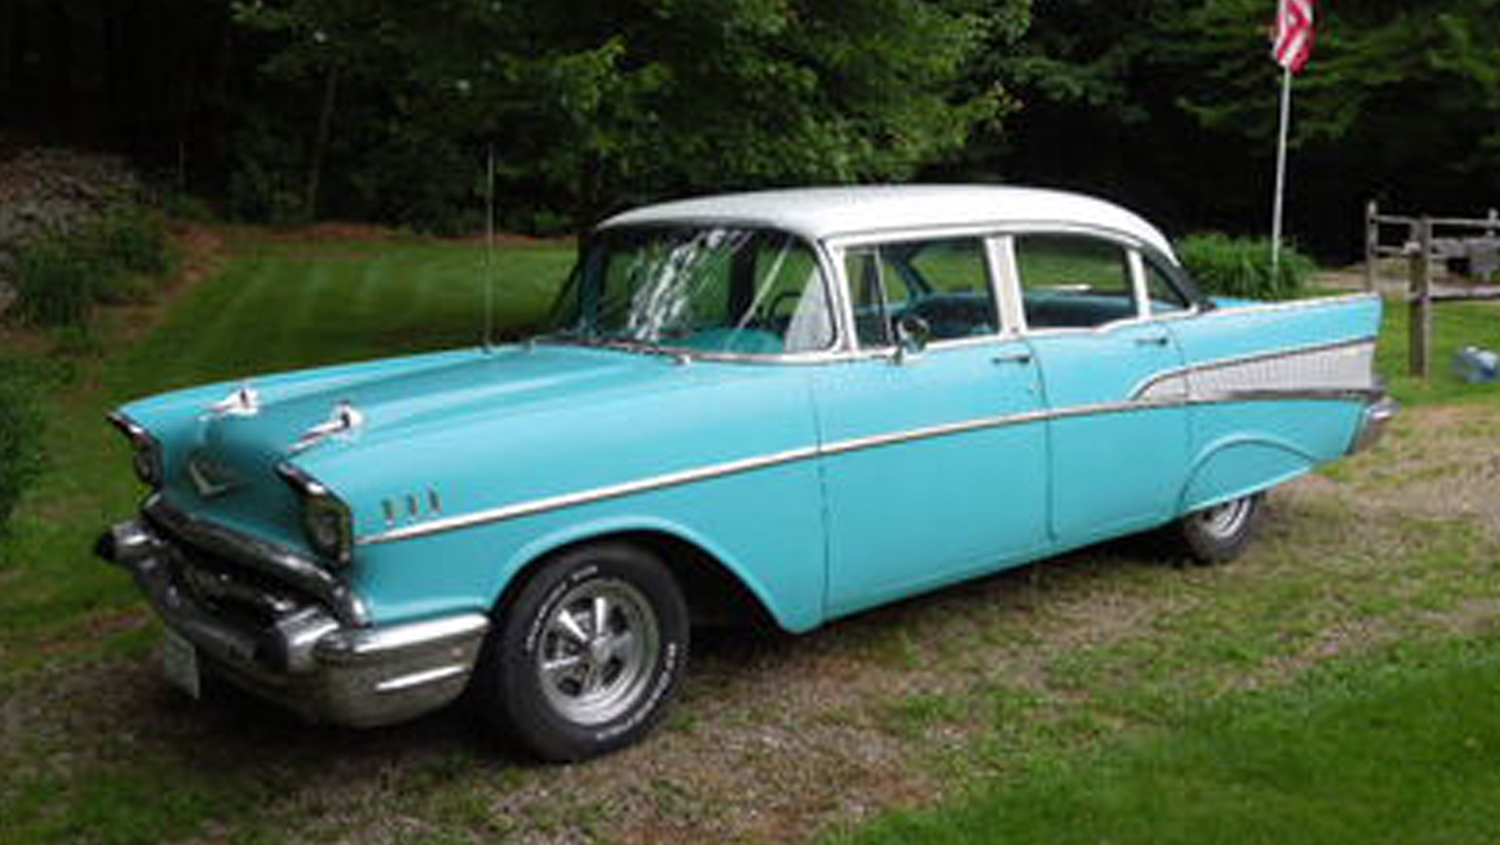 Keys To Happiness Son Surprises Dad With 57 Chevy For 57th Birthday